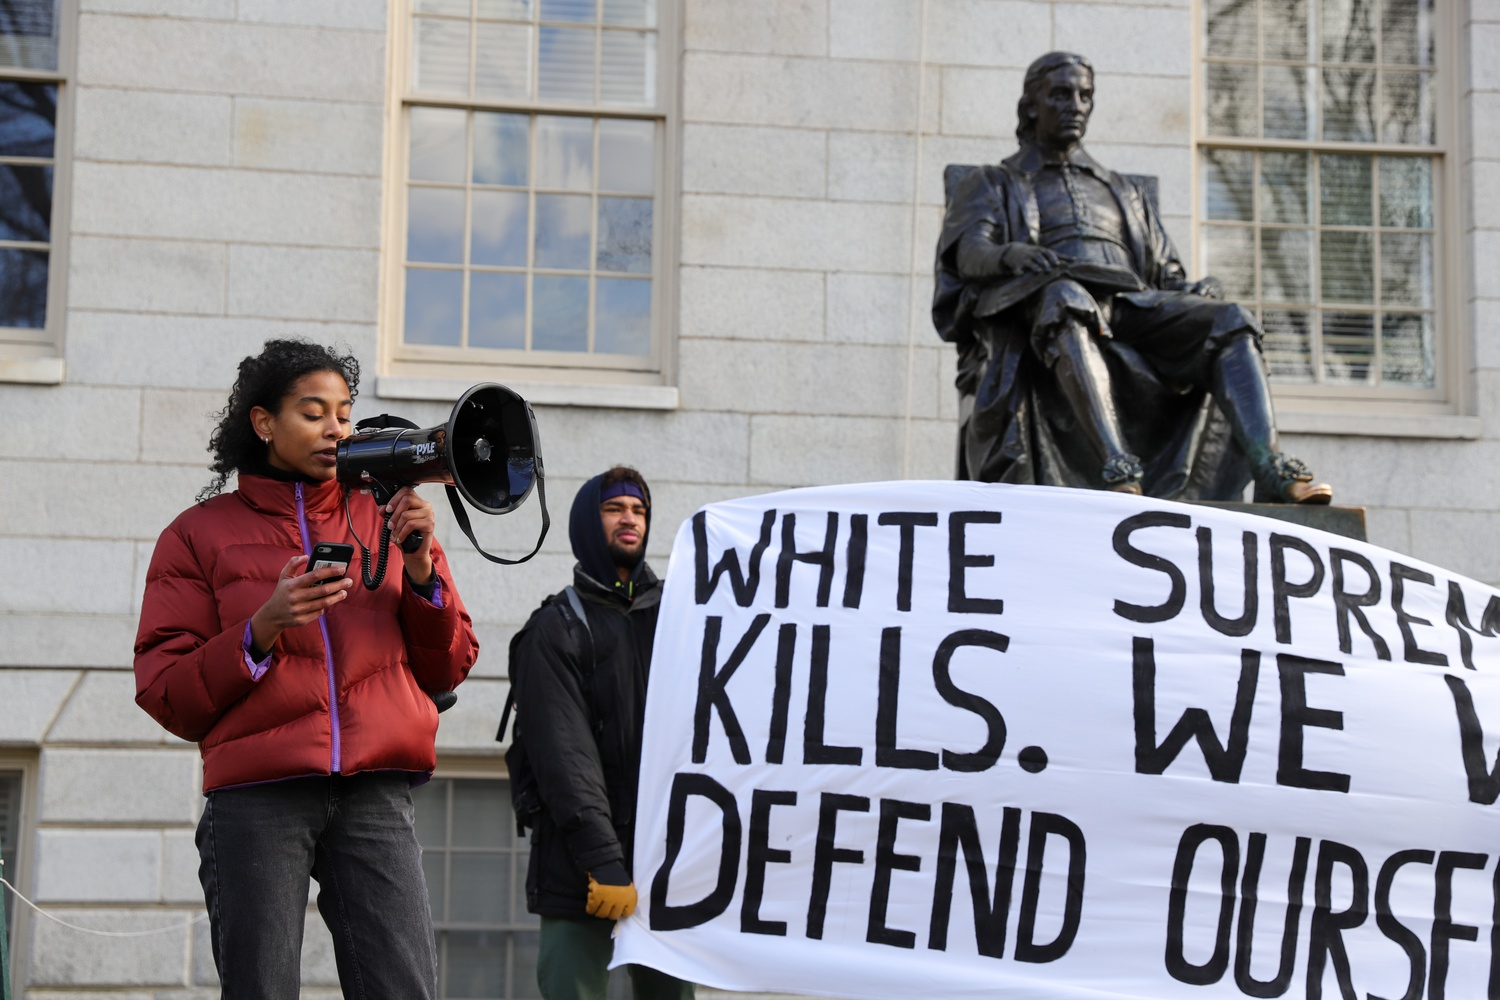 Students organized a rally Saturday afternoon calling for HUPD's abolishment and criticizing its history of sexism and racism.